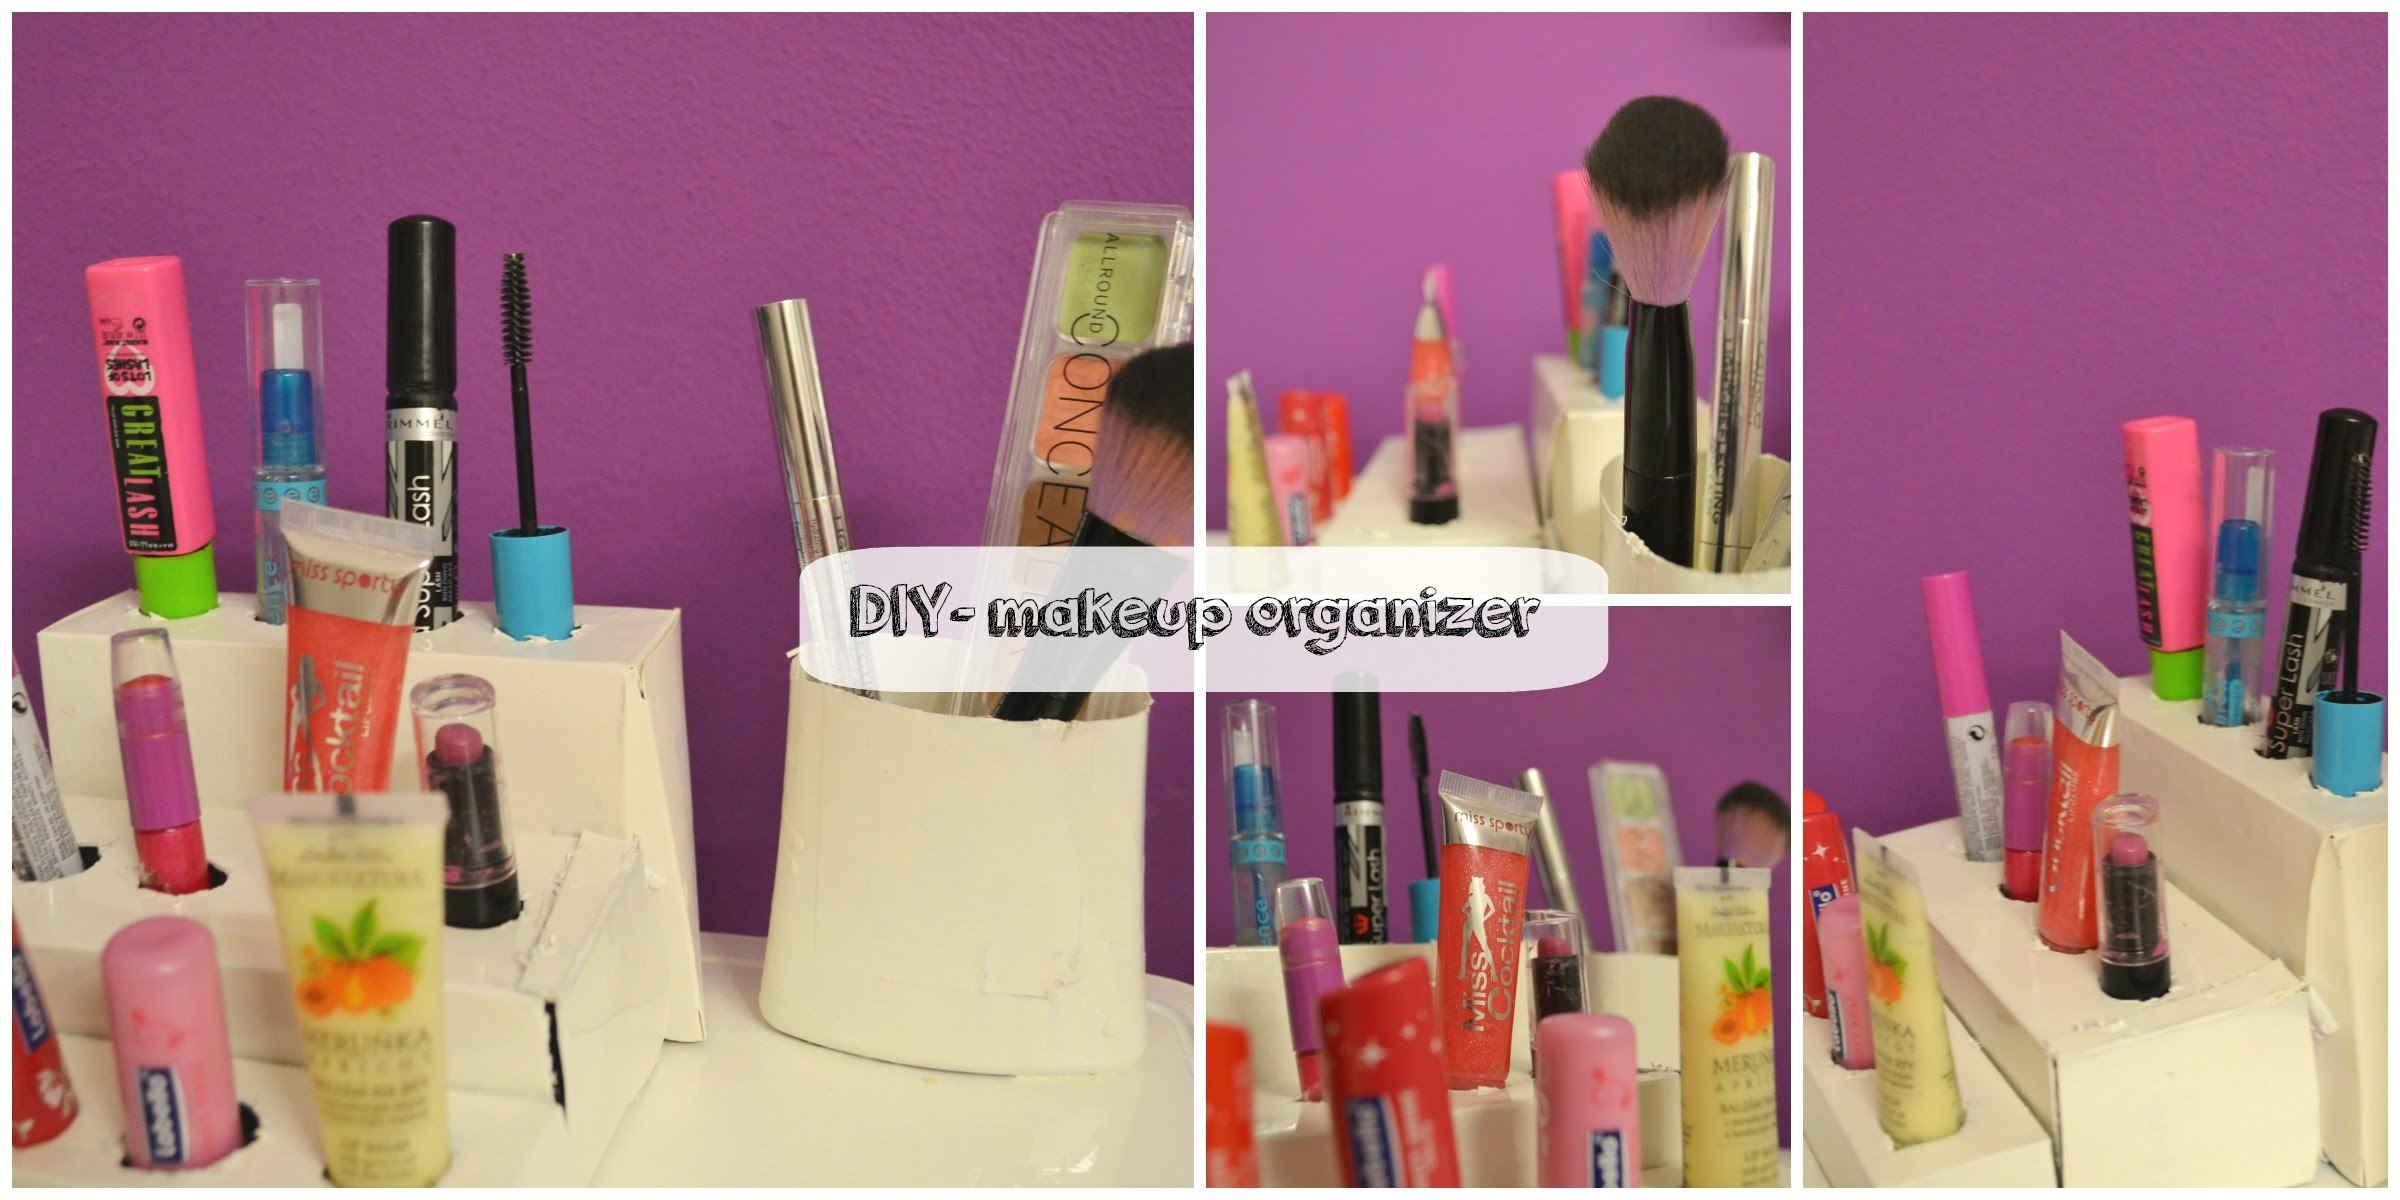 DIY- makeup organizer